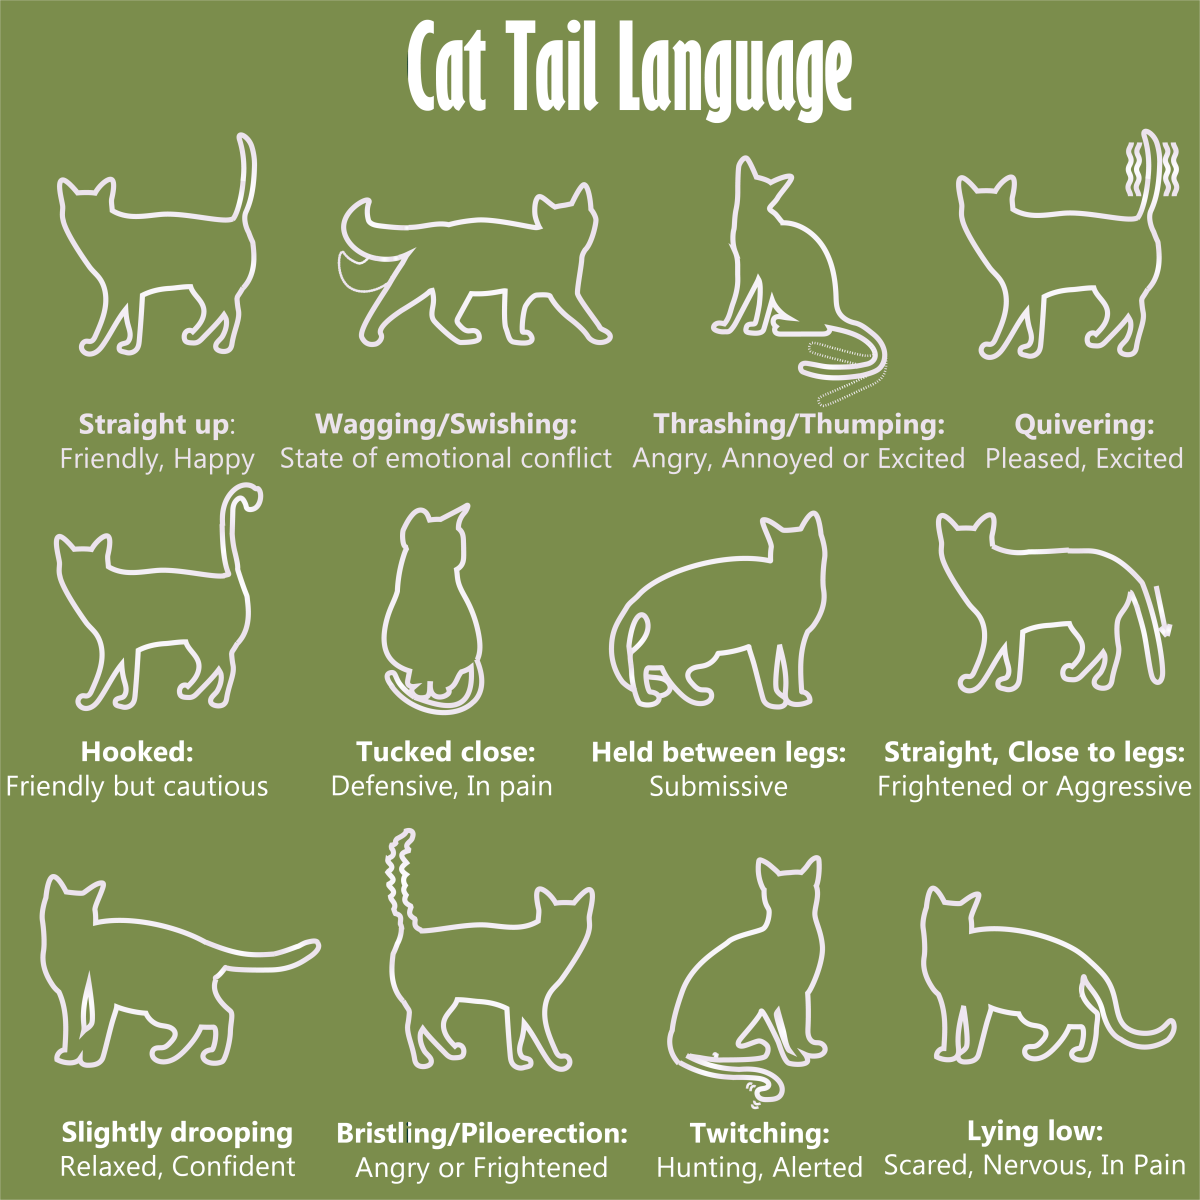 Tail Language of Cats